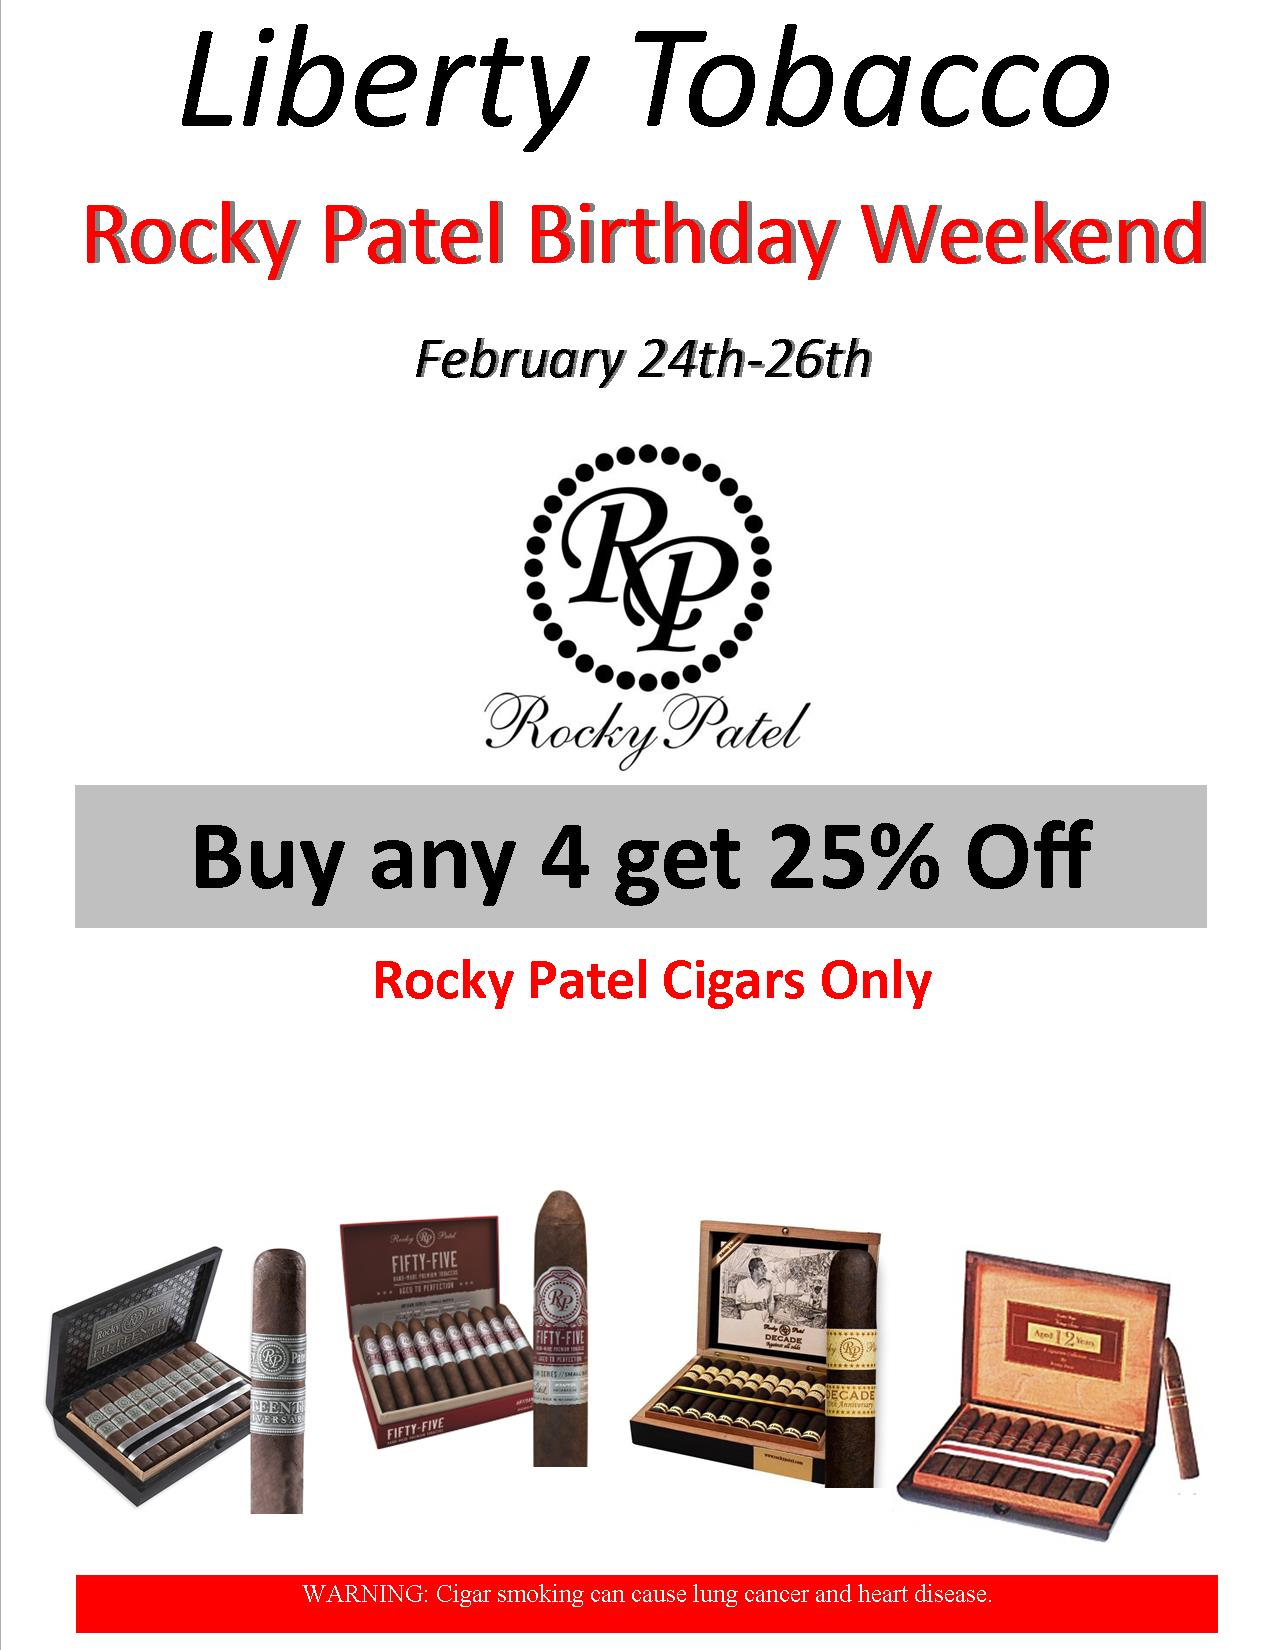 Rocky Patel Birthday Weekend Special